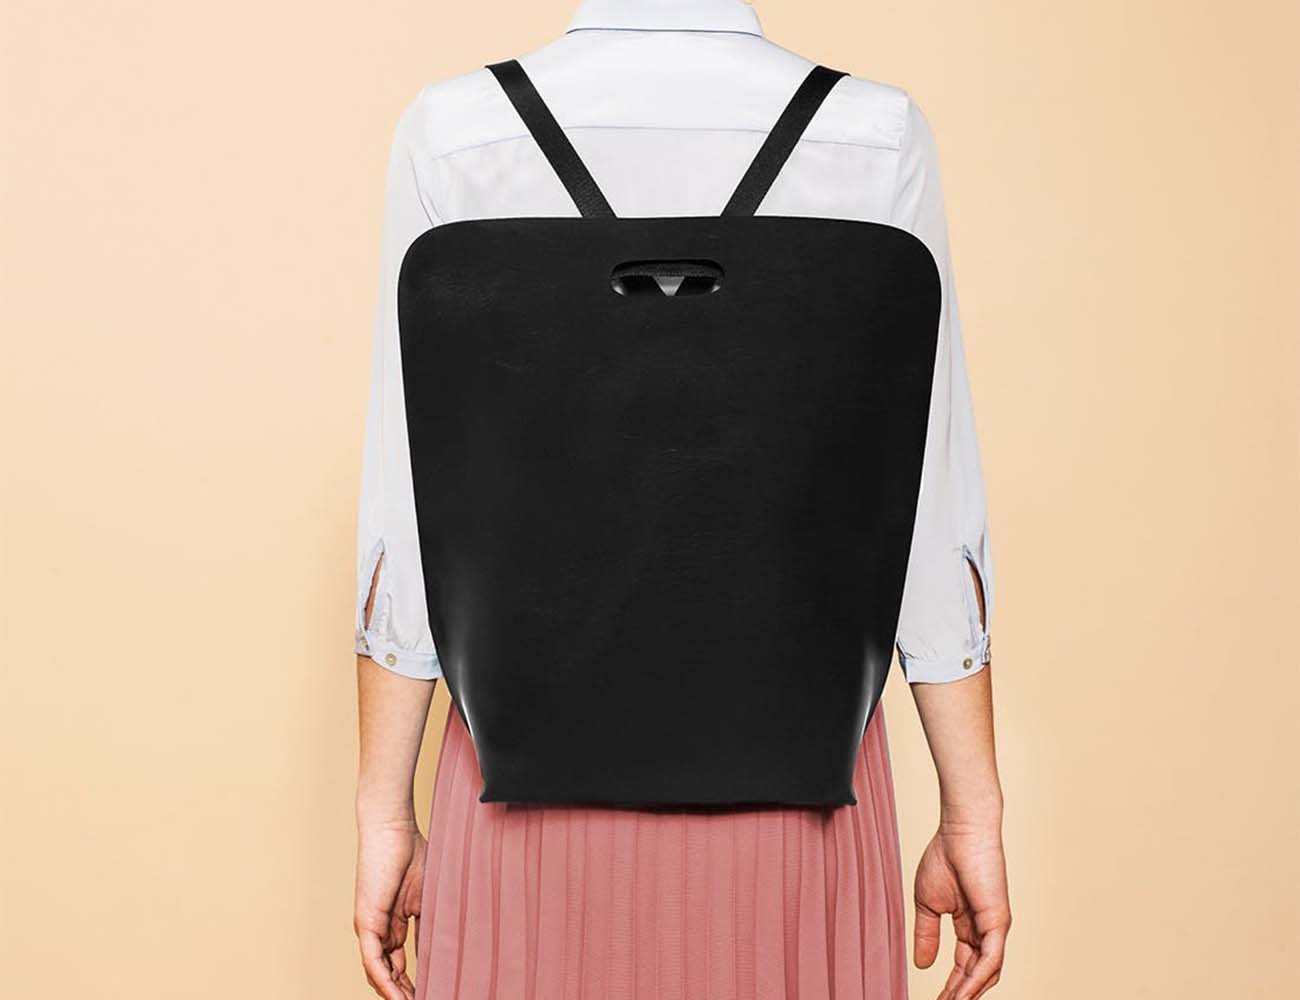 Basic+Leather+Backpack+By+Simple+Be